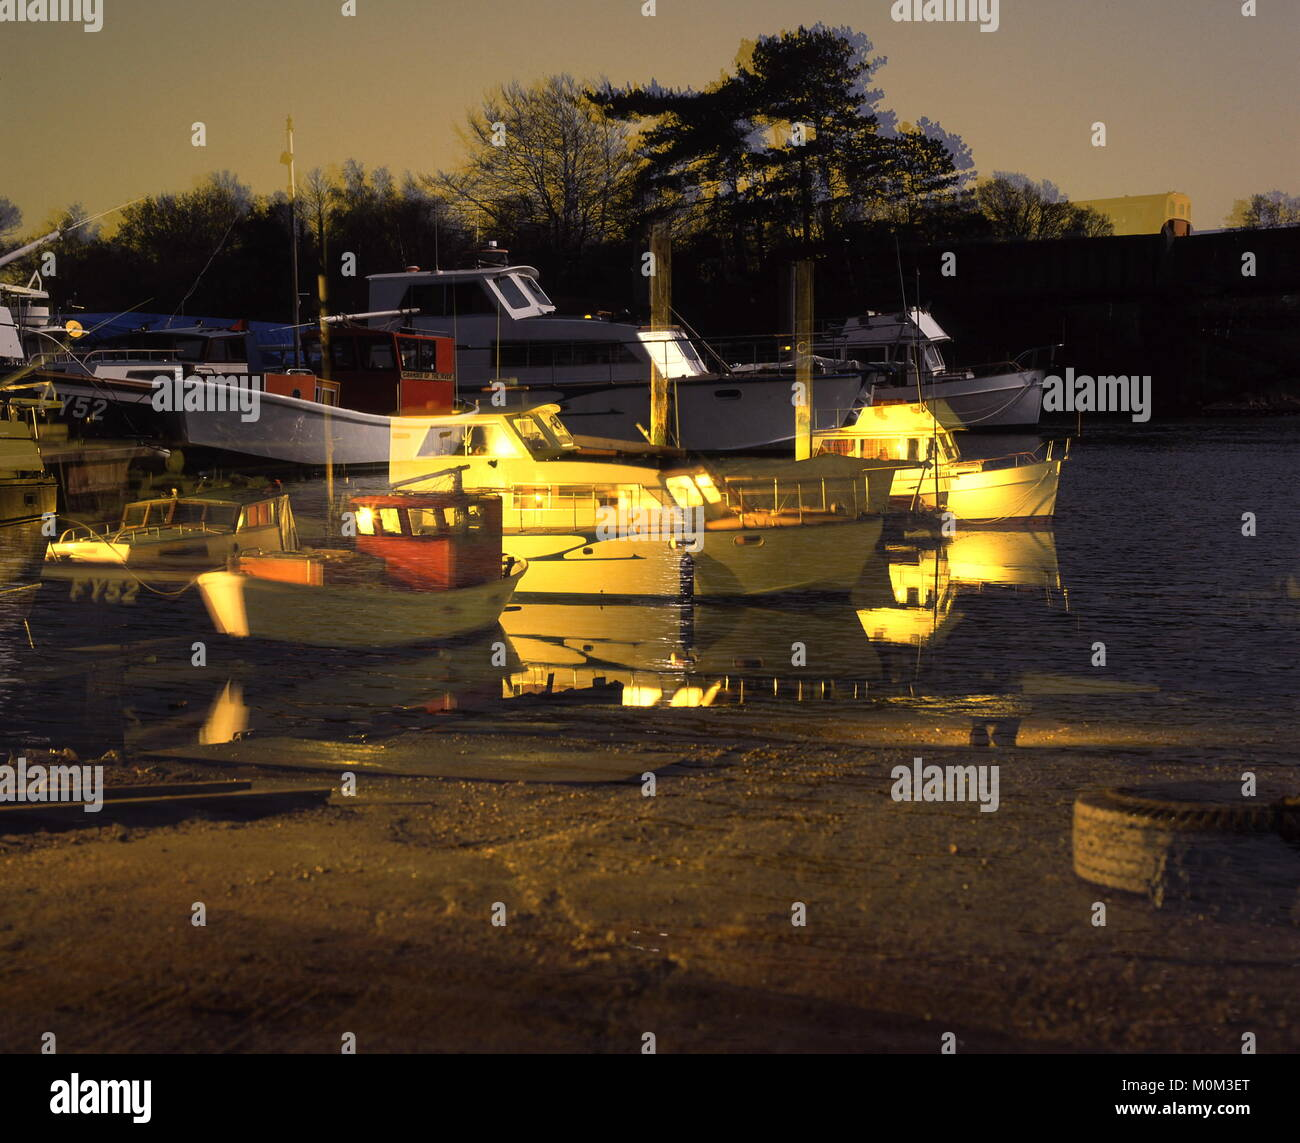 AJAXNETPHOTO. HAMBLE RIVER, ENGLAND. - TIDE RANGE - EFFECT OF TIDAL RANGE HEIGHT DIFFERENCE BETWEEN HIGH AND LOW - Stock Image